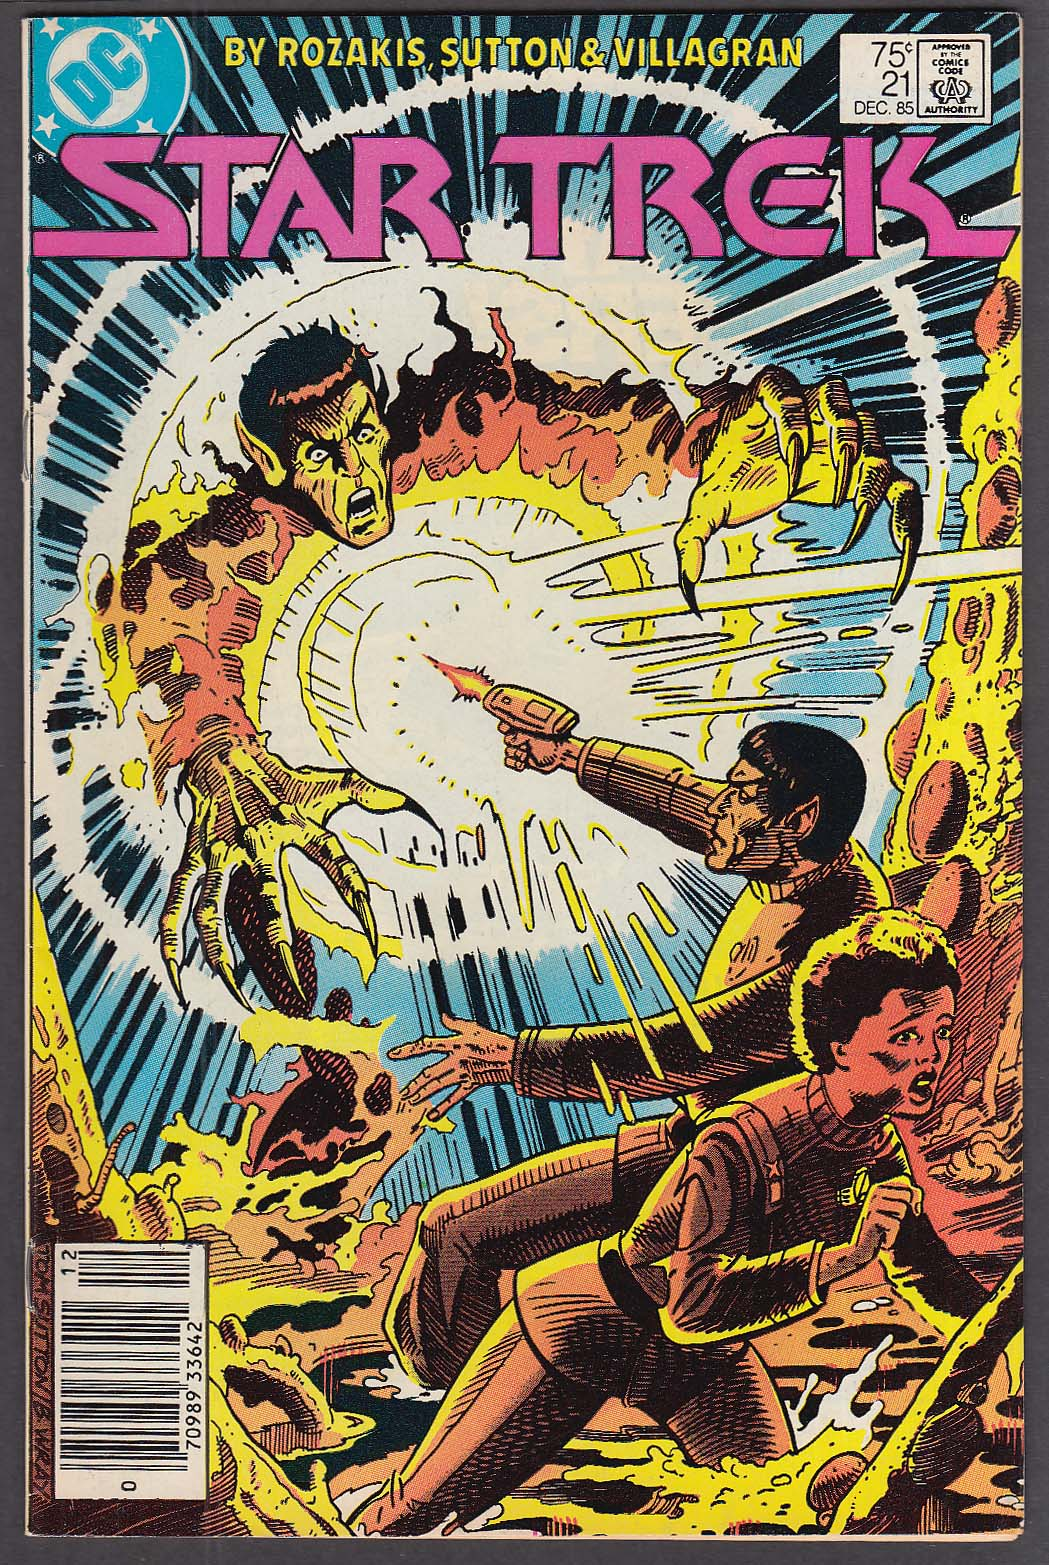 STAR TREK #21 DC comic book 12 1985